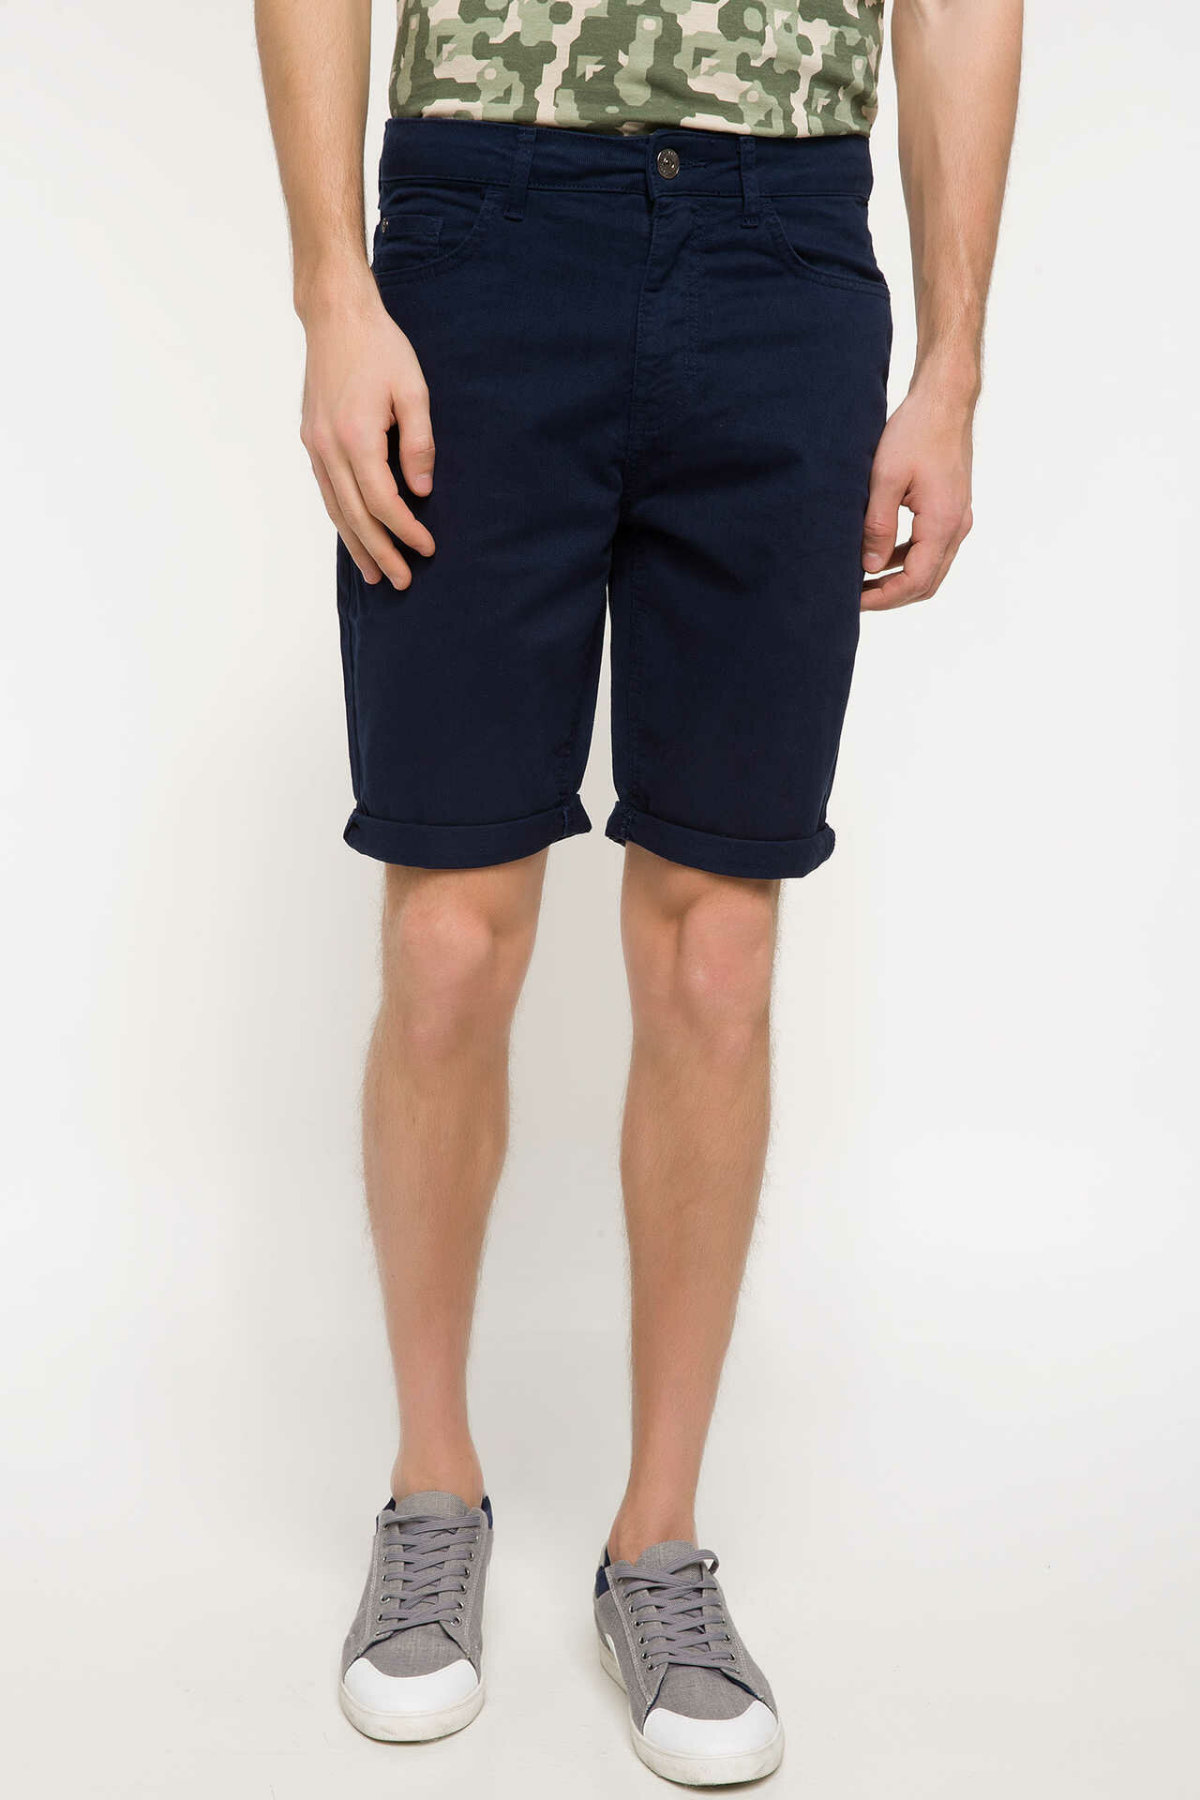 DeFacto Men Summer Casual Straight Navy Blue Shorts Woven Bottom Male Shorts Bermuda H7772AZ18SMNM26-H7772AZ18SM